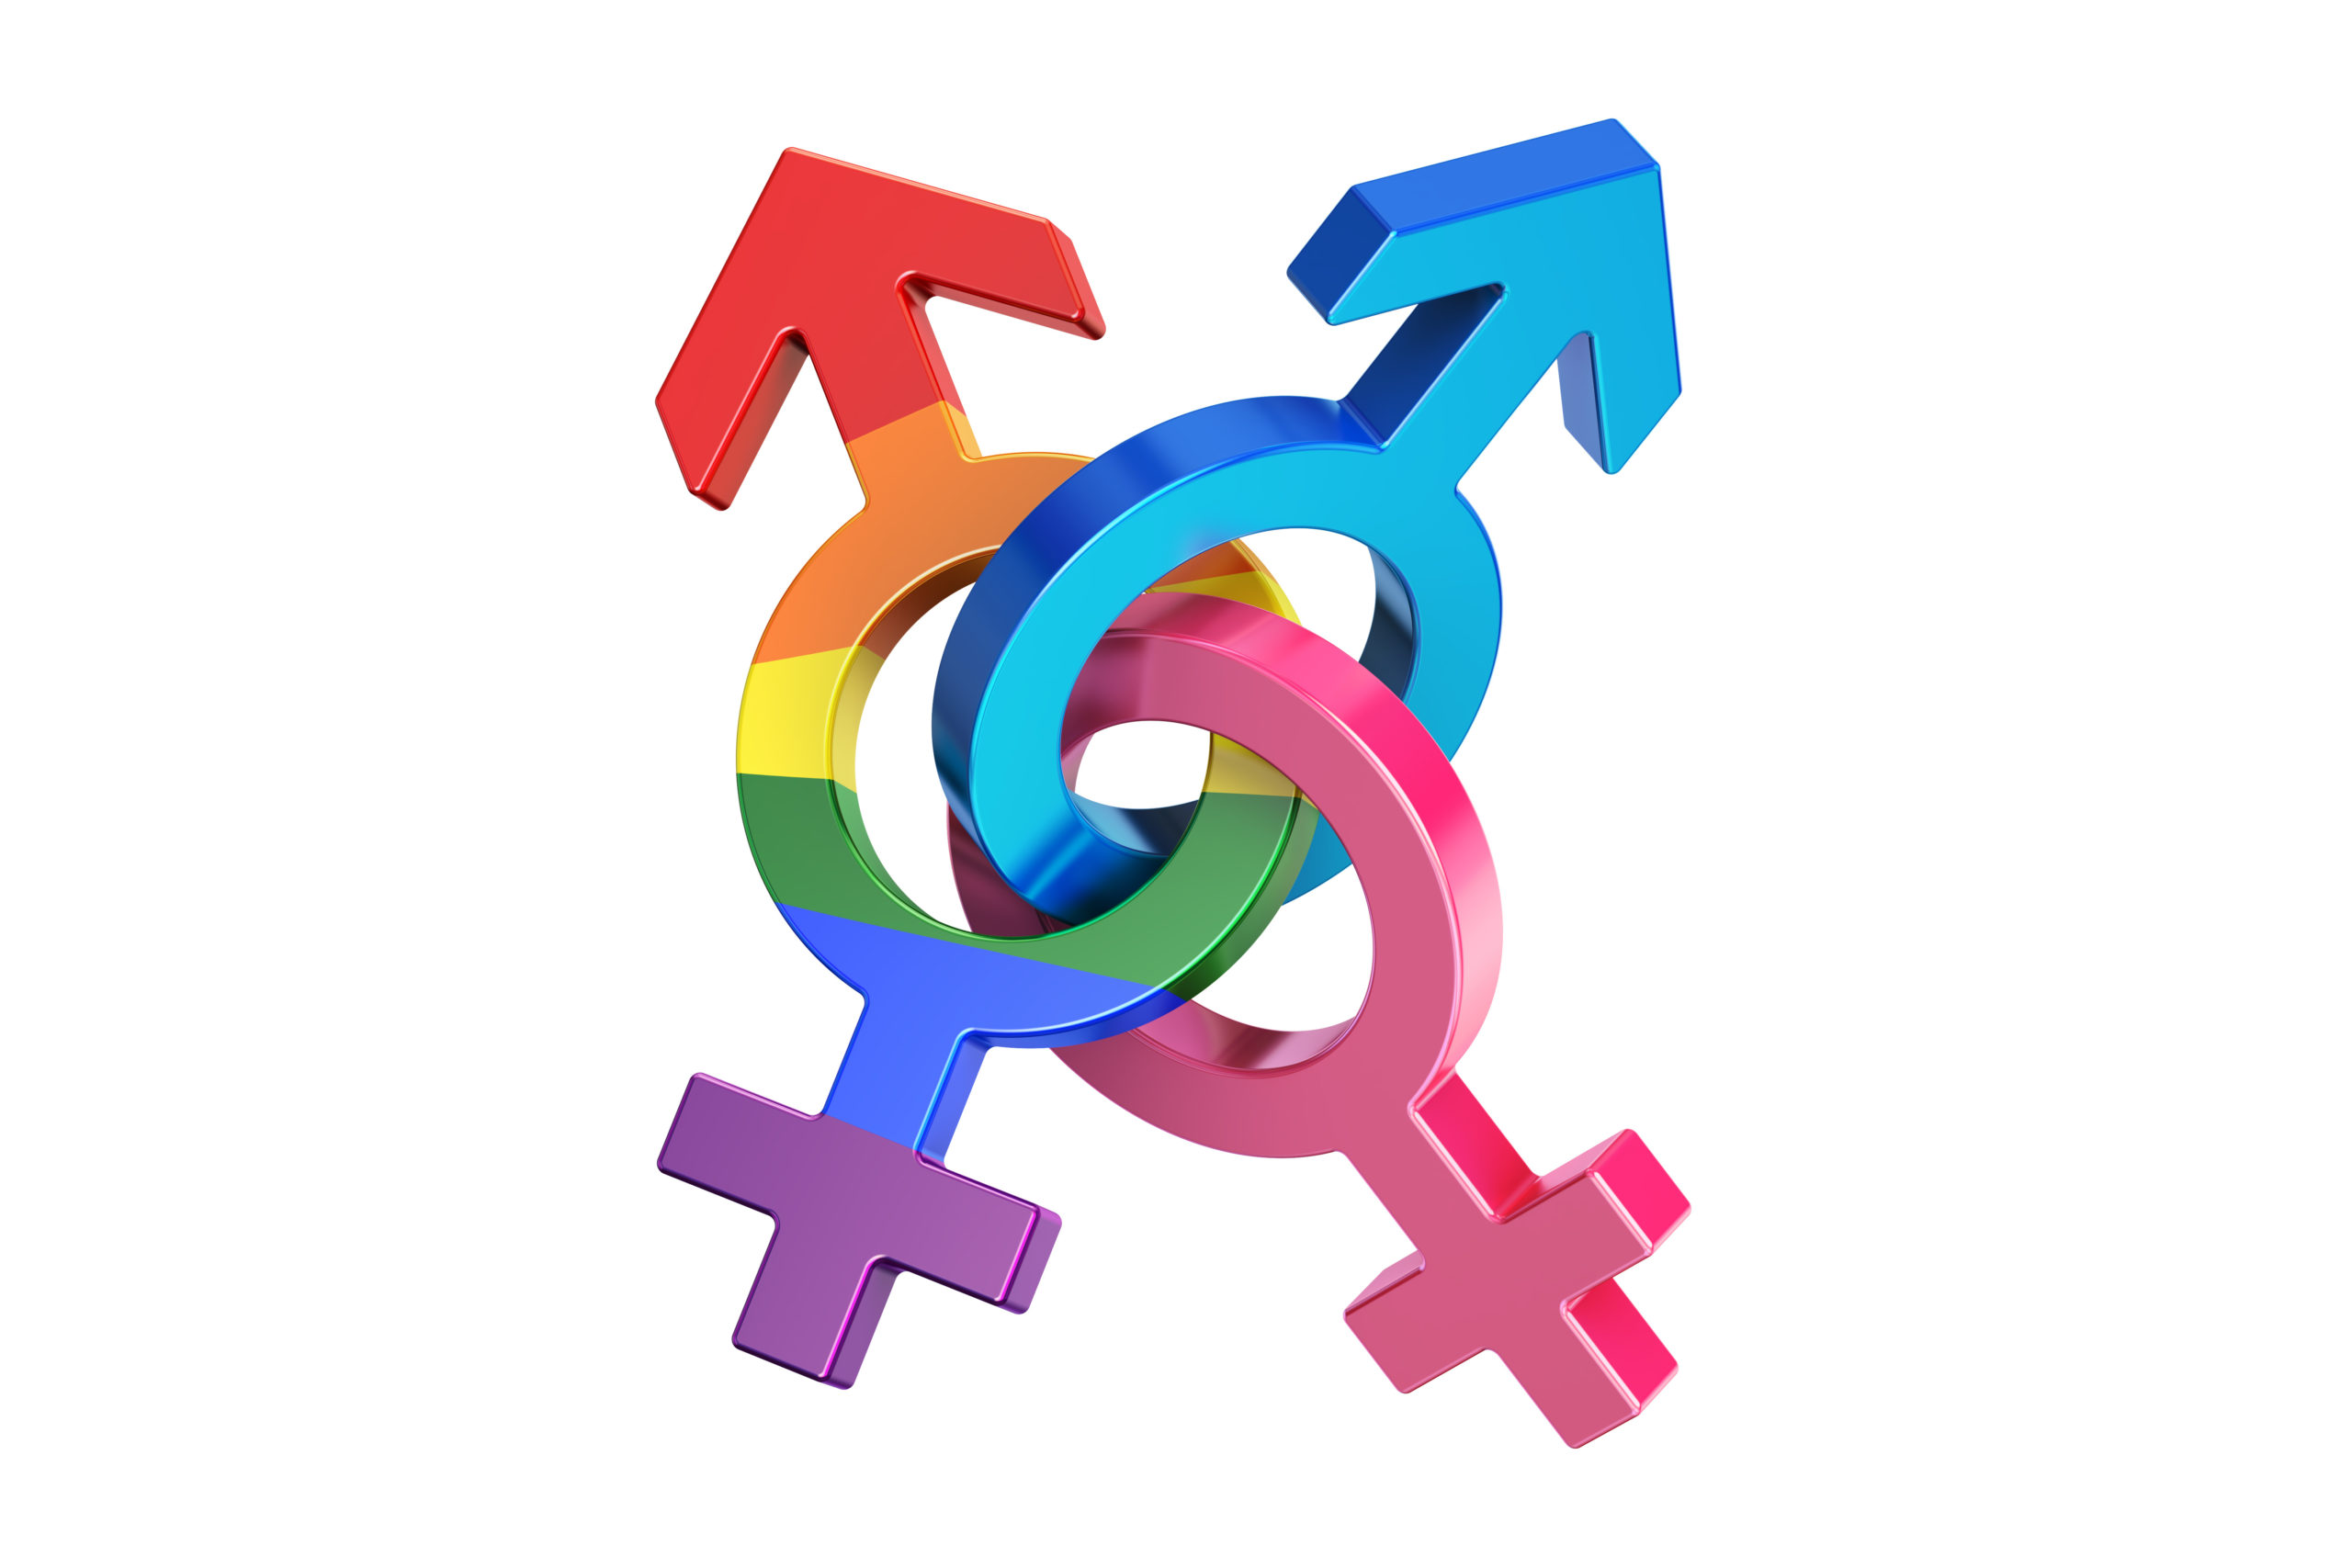 gender symbols, 3D rendering isolated on white background